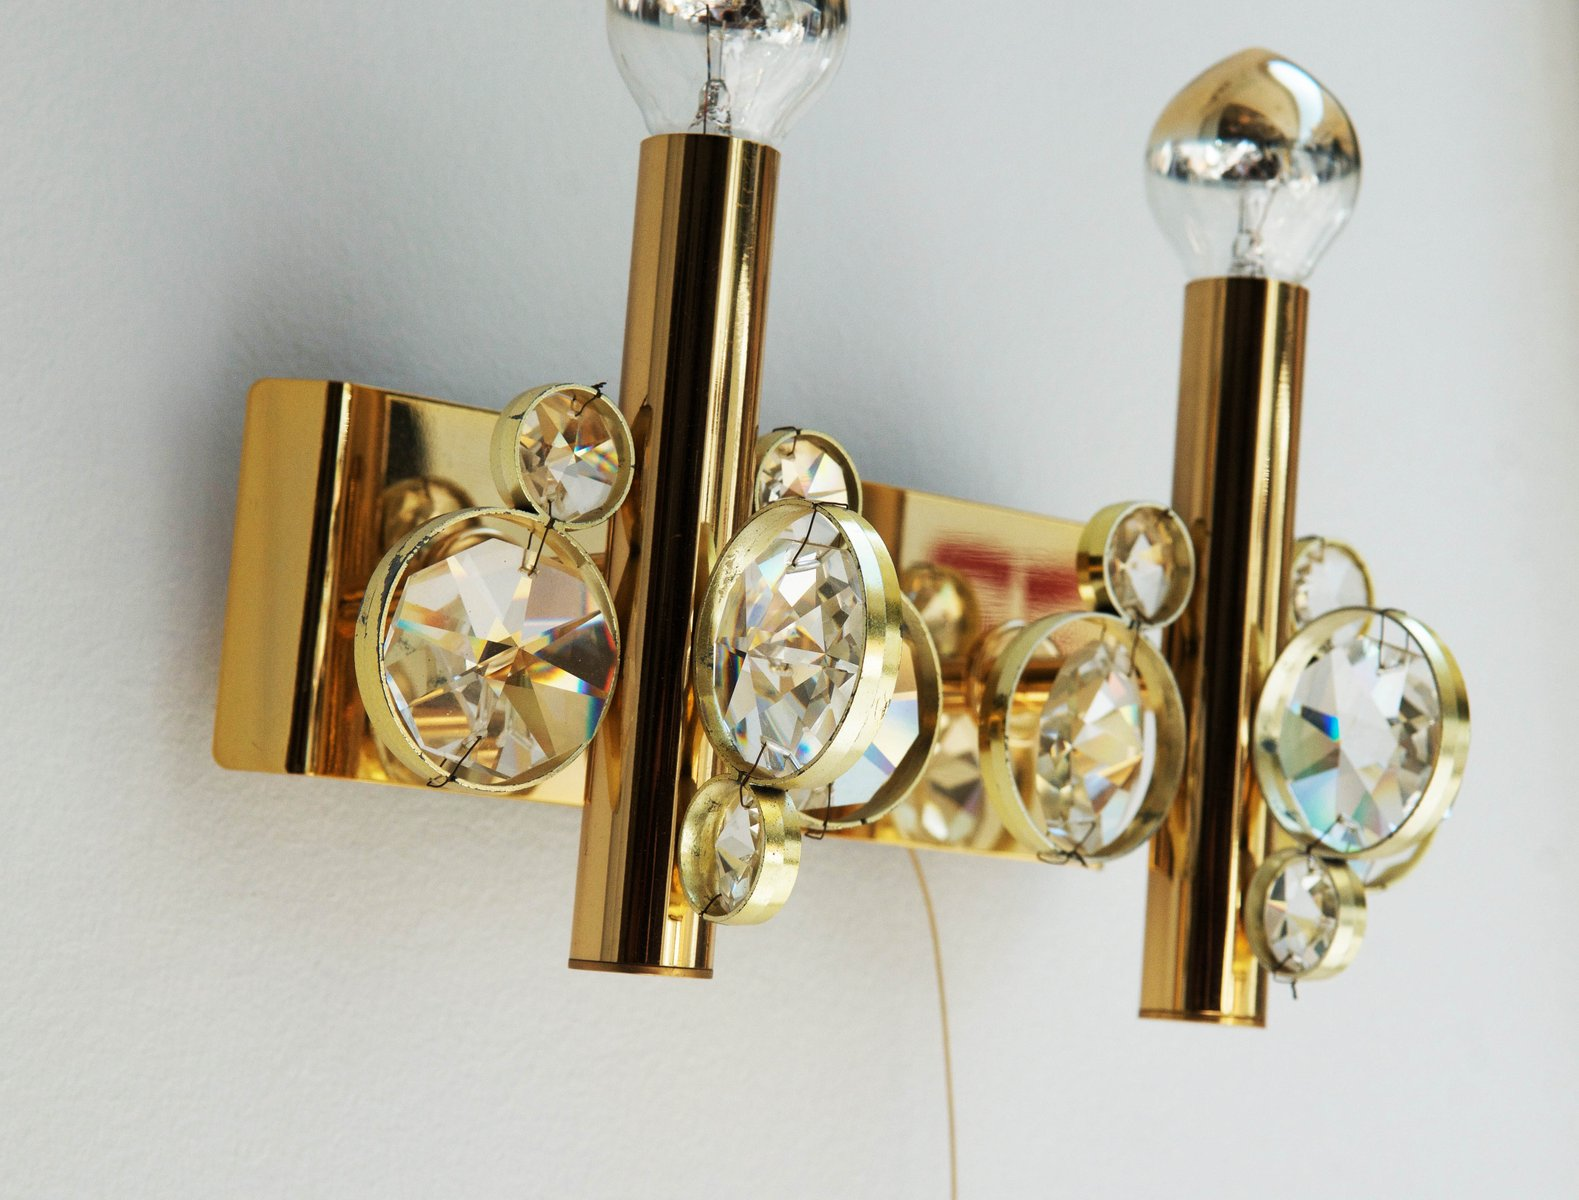 Vintage Crystal Wall Sconces : Vintage Cut Crystal Wall Sconce for sale at Pamono